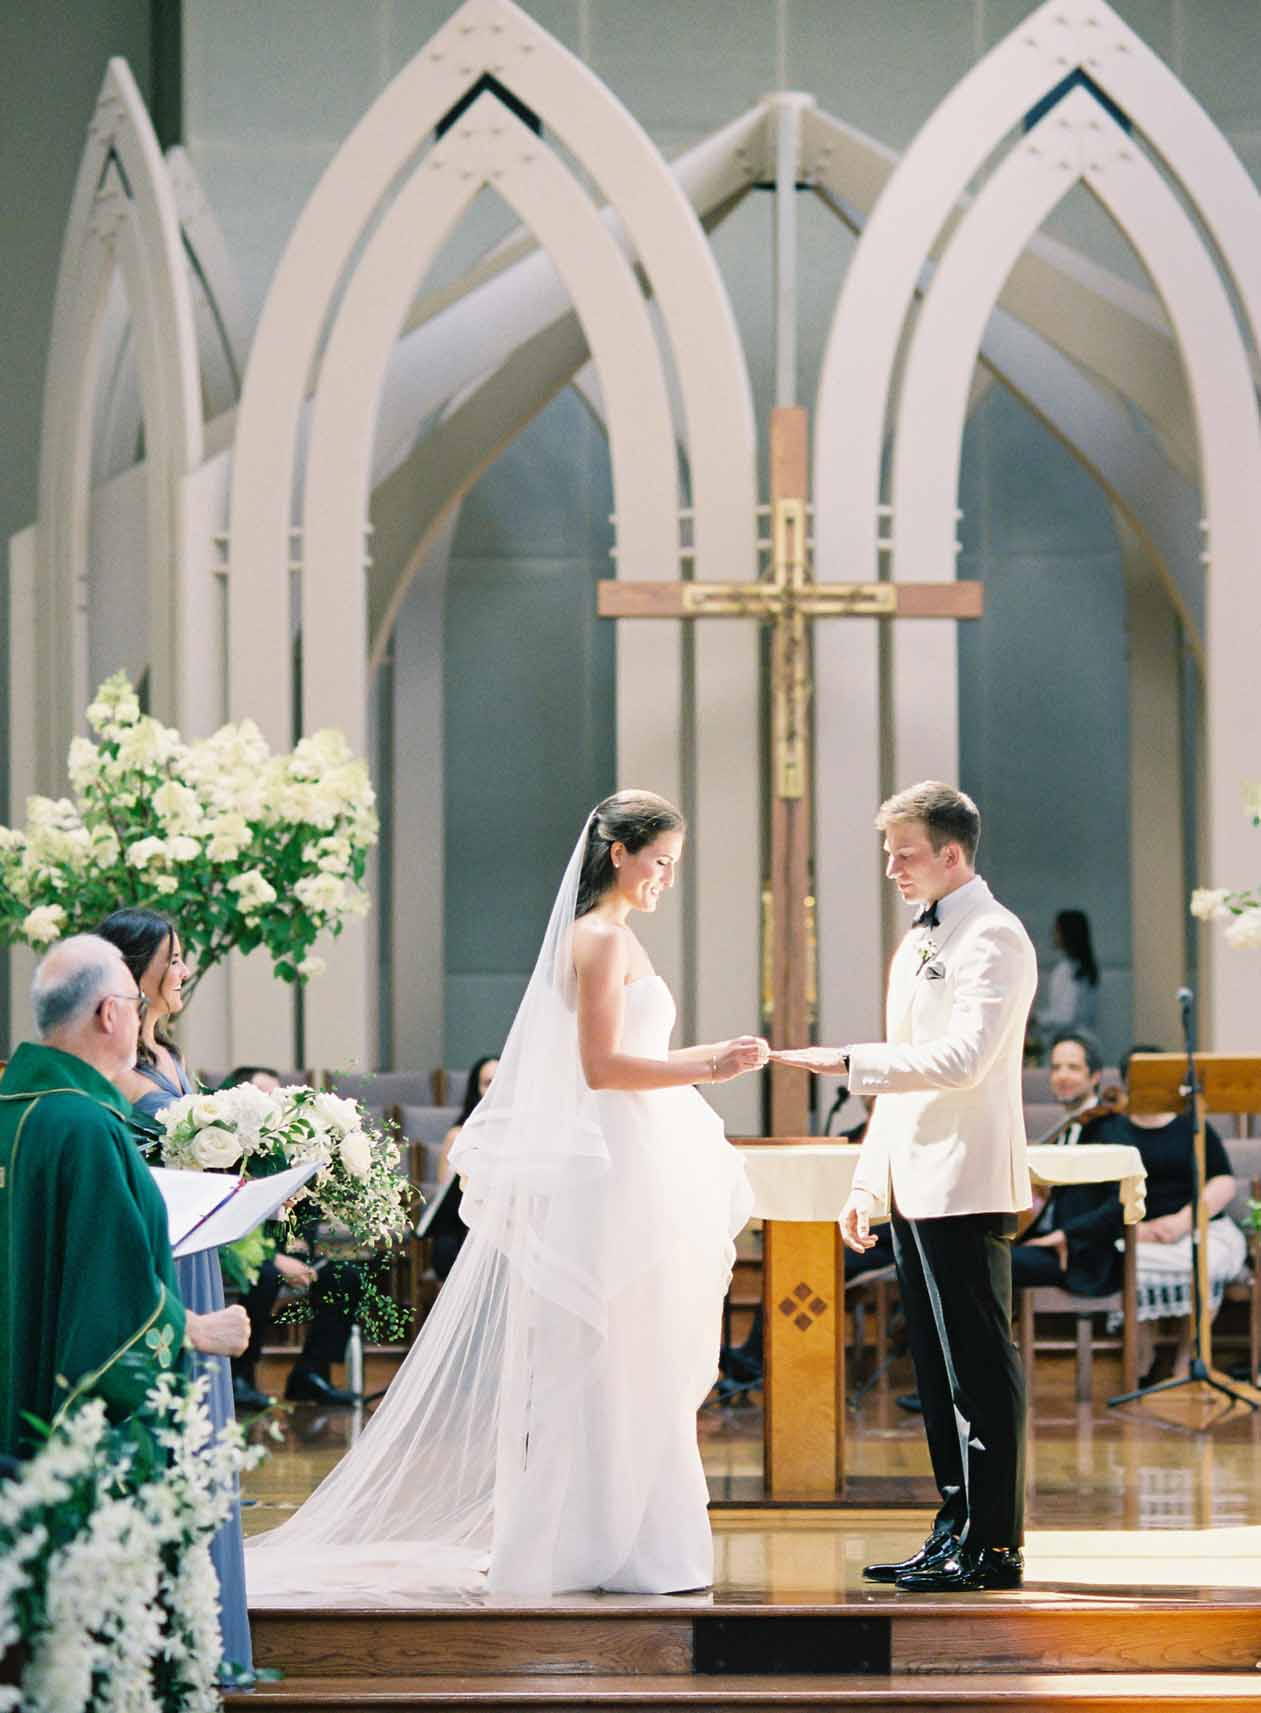 Wedding couple giving vows at church altar, with tall white hydrangea decorations